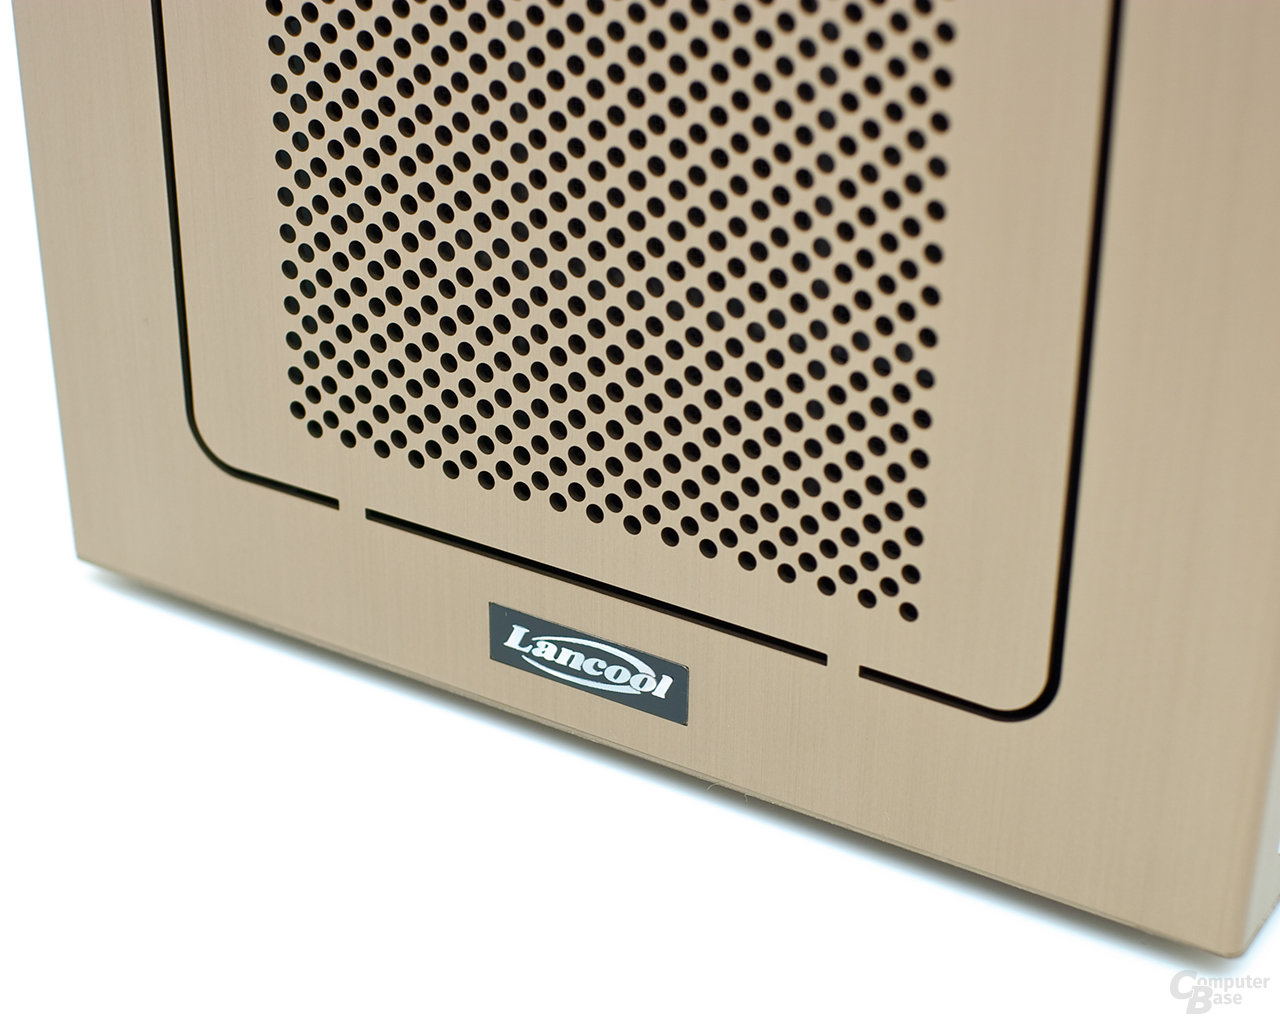 Lancool K7 – Frontdetail